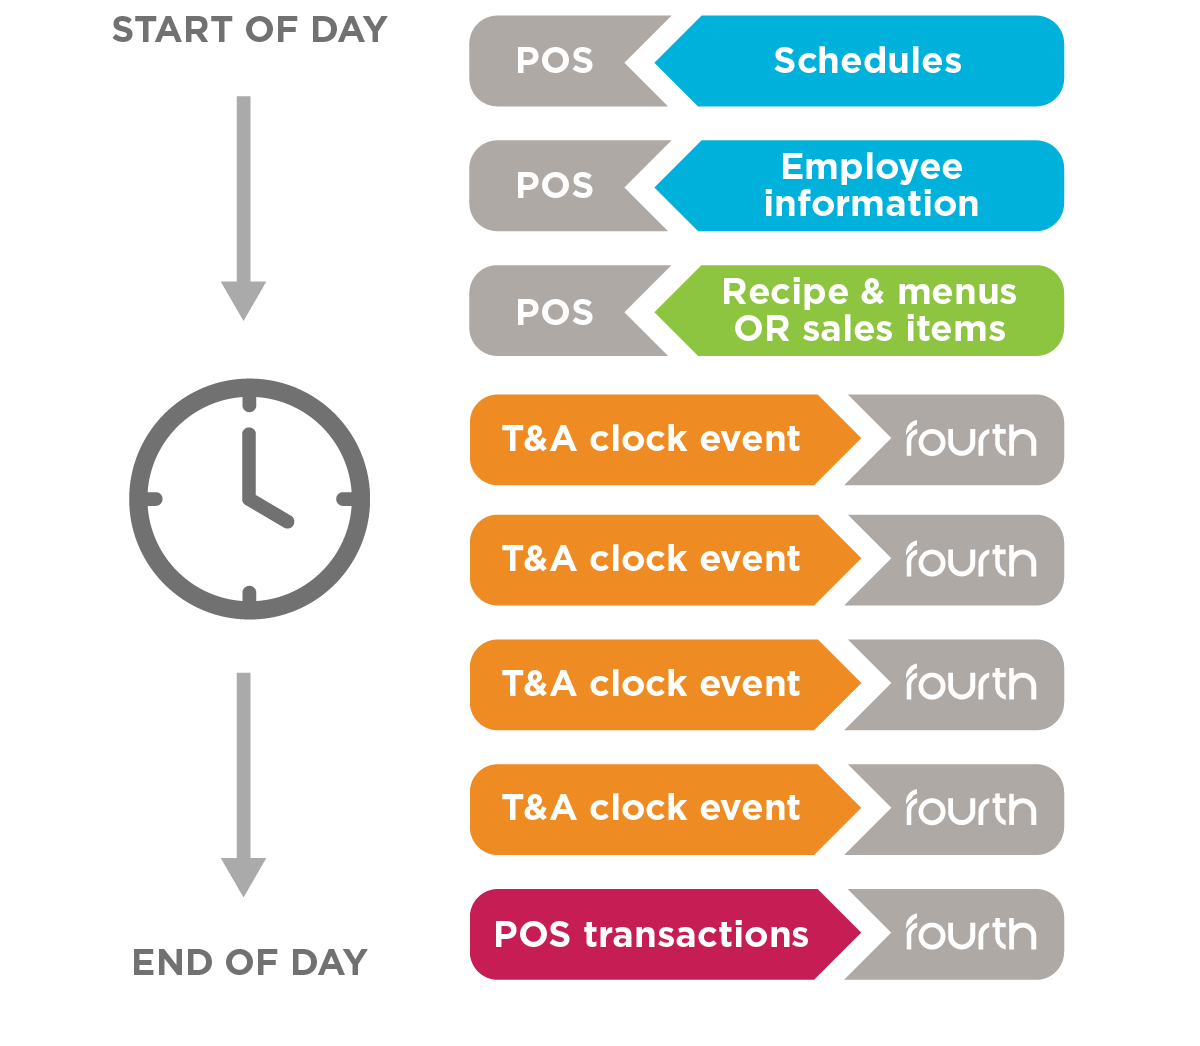 Diagram showing different API calls made by a POS solution during a day.